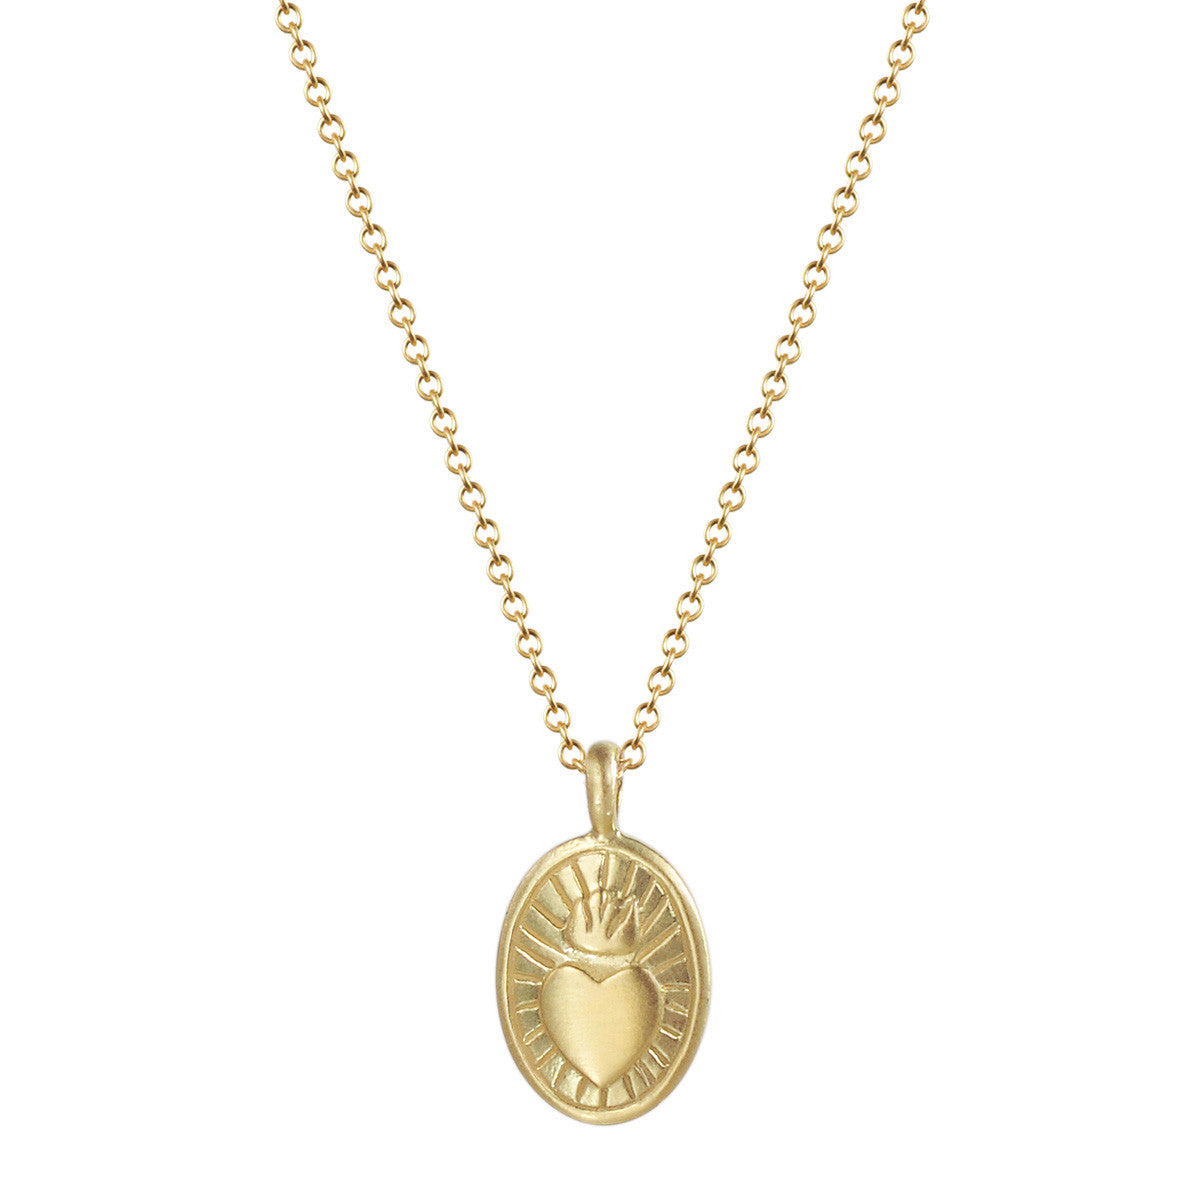 18K Gold Charity Trinket Pendant